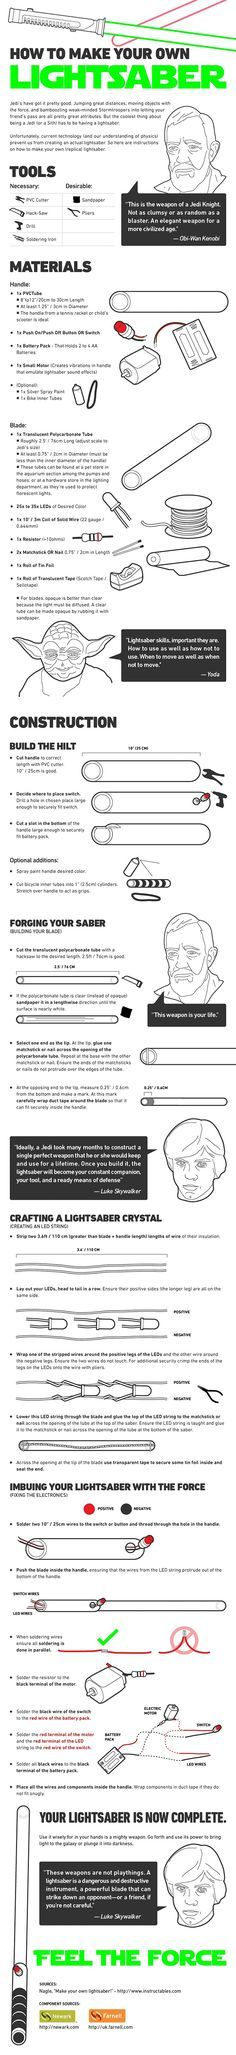 Make Your Own Lightsaber: DIY Instructions